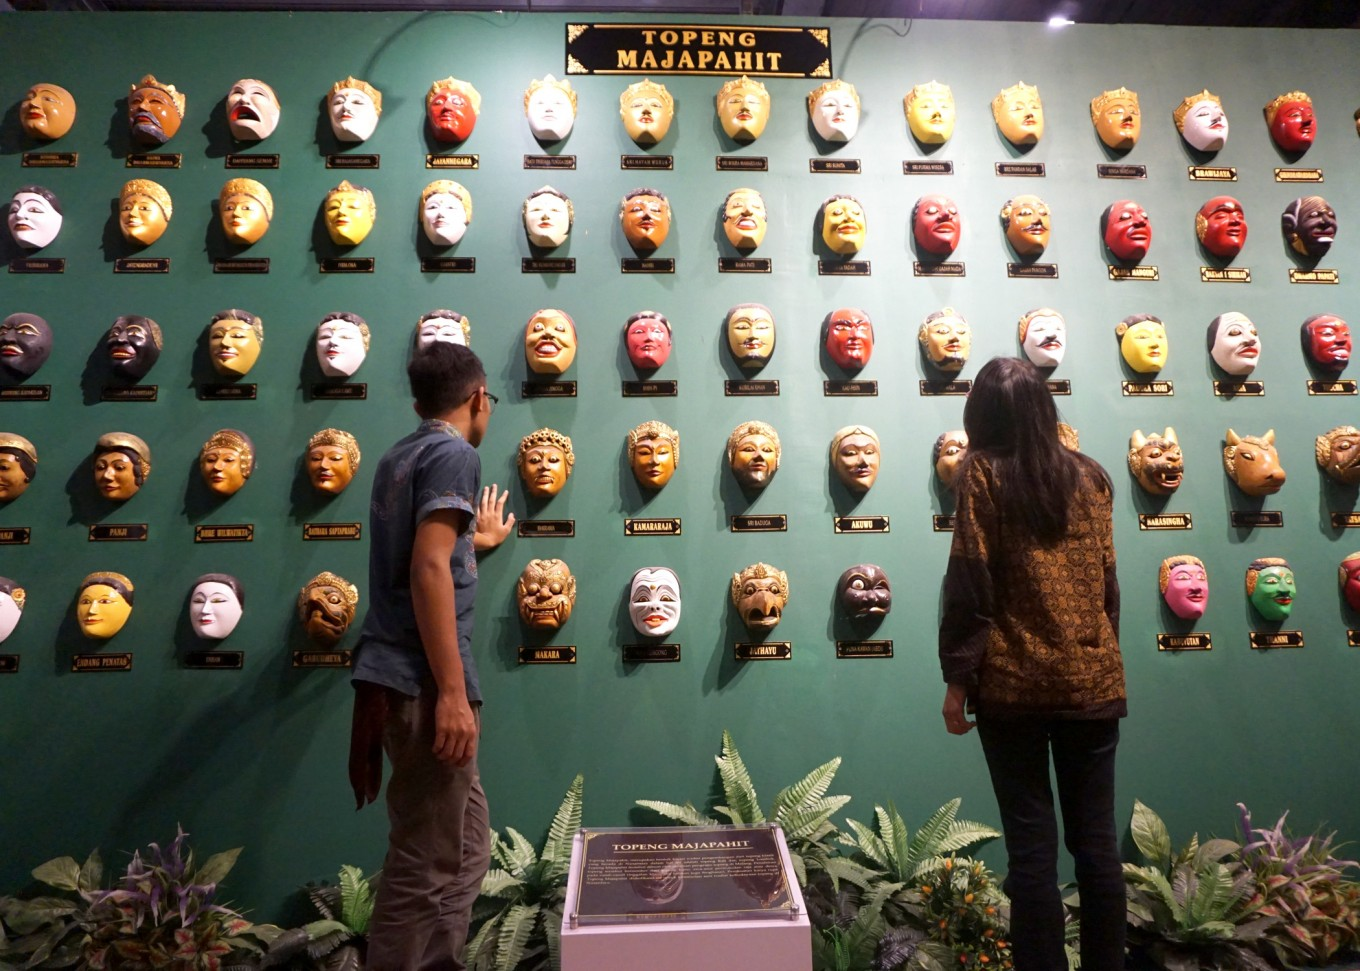 Visitors are seen admiring Majapahit masks, which were created based on interpretations of ancient stupas and temples built in the era of the Majapahit and Singosari kingdoms.